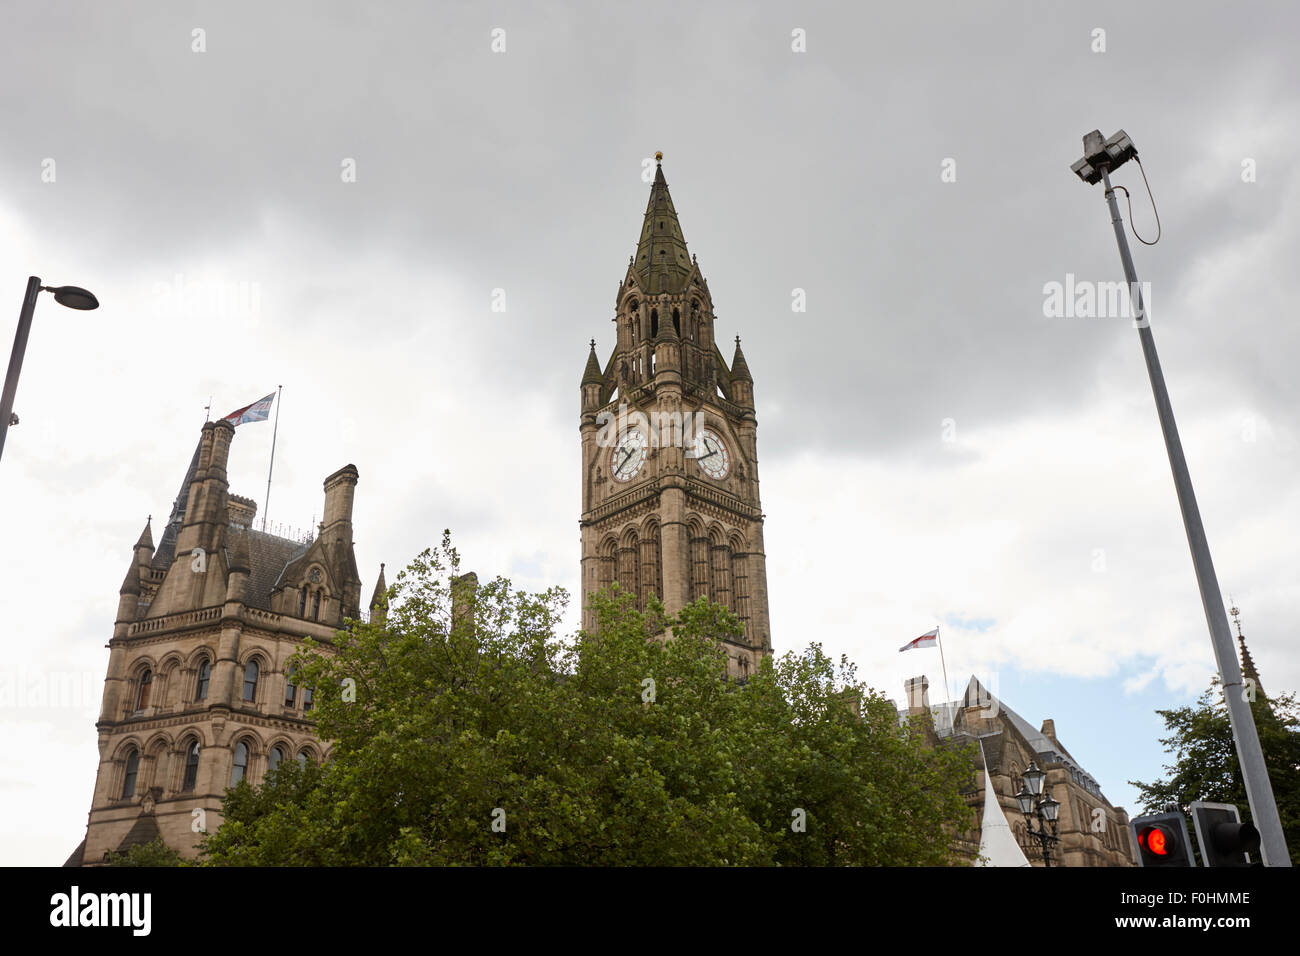 cctv camera outside Manchester town hall England UK - Stock Image